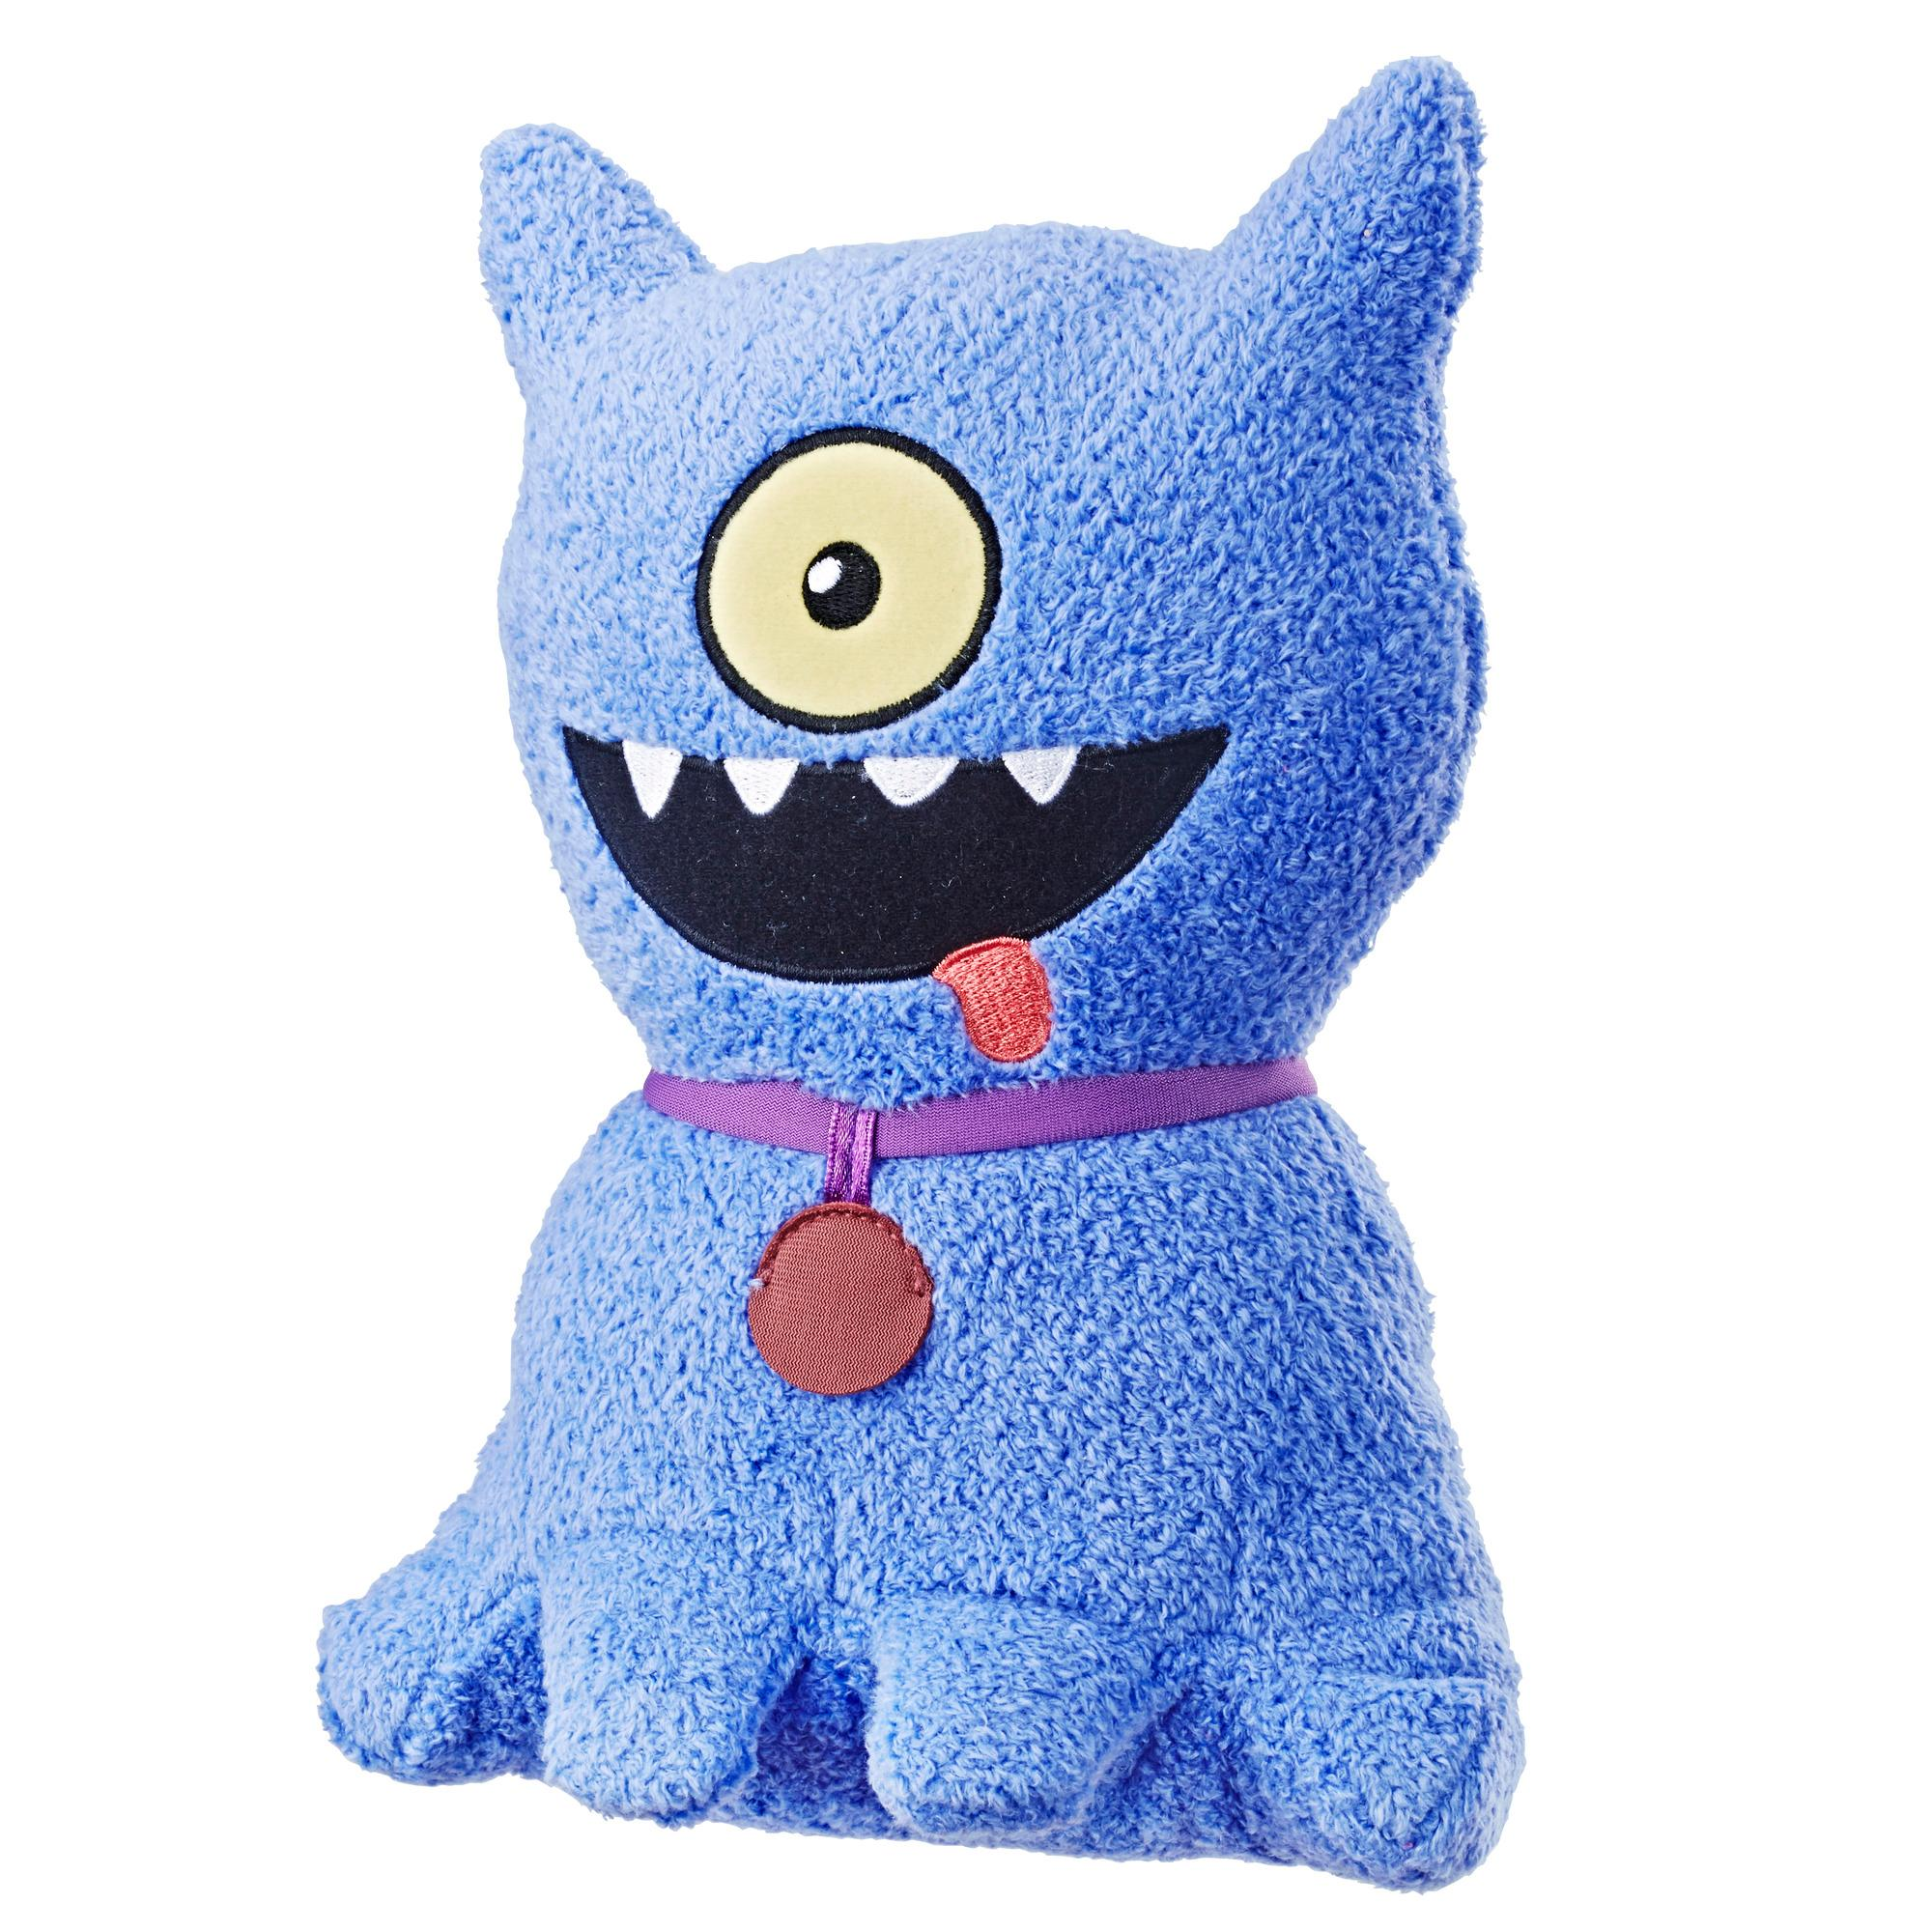 UglyDolls Feature Sounds Ugly Dog - Brinquedo de Pelúcia de 24 cm que Fala